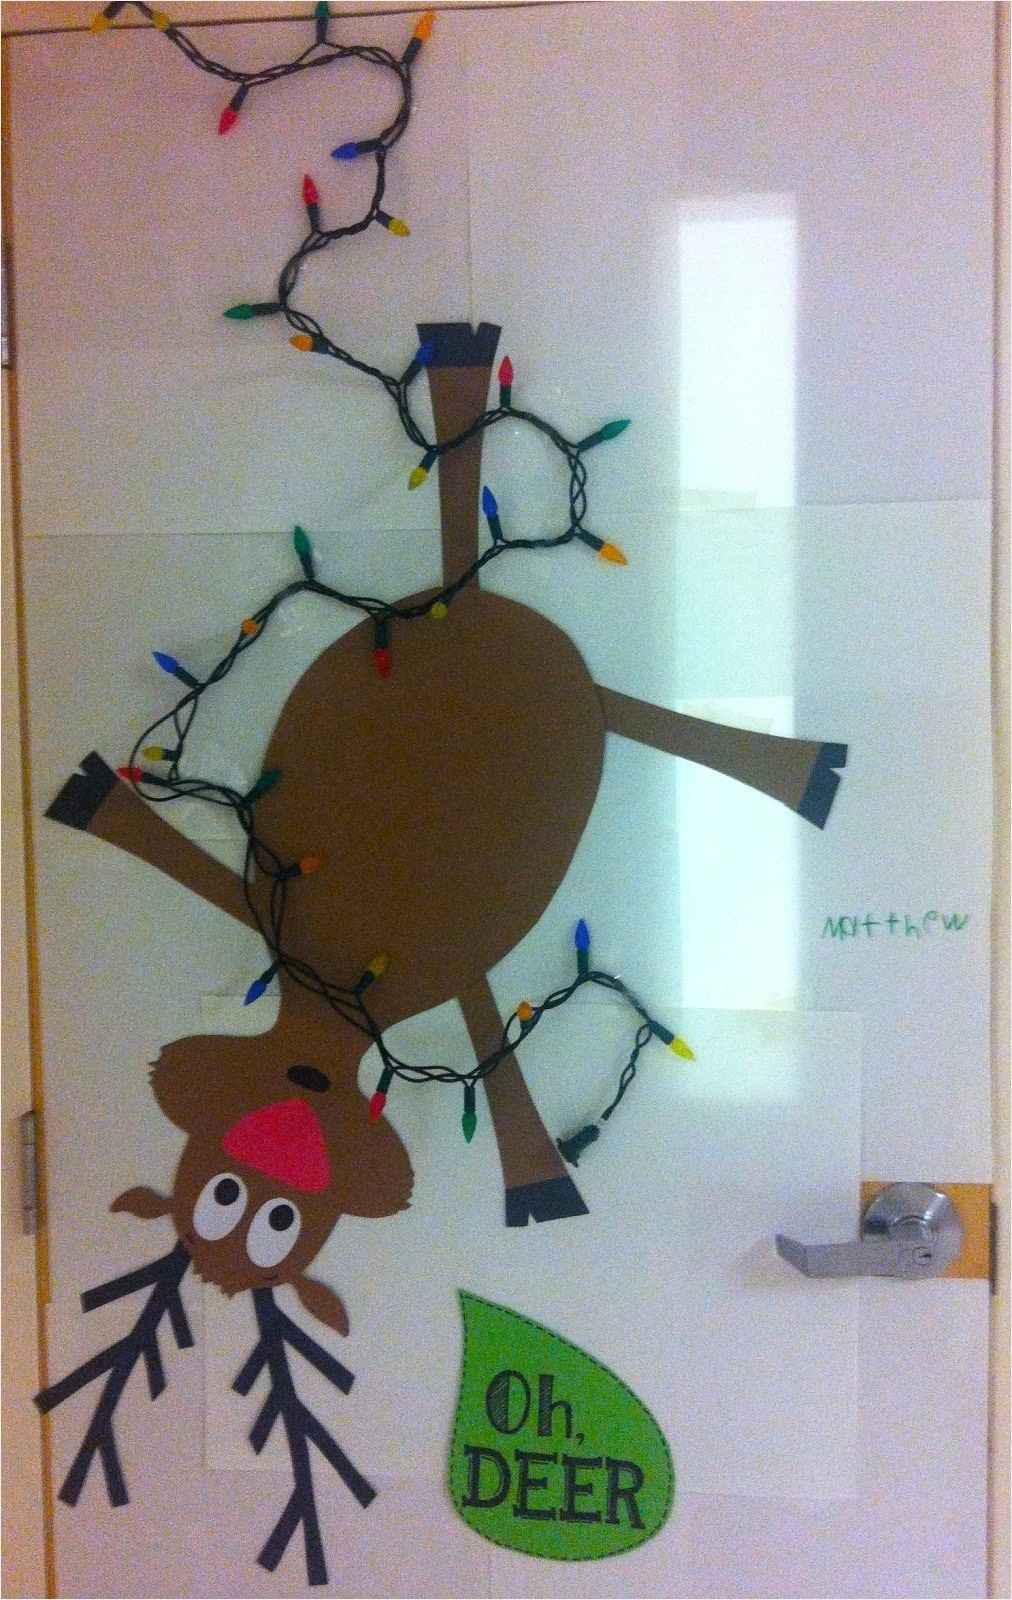 36 Cute Christmas Door Decoration Ideas - DecoRequired #christmasdoordecorationsforschool